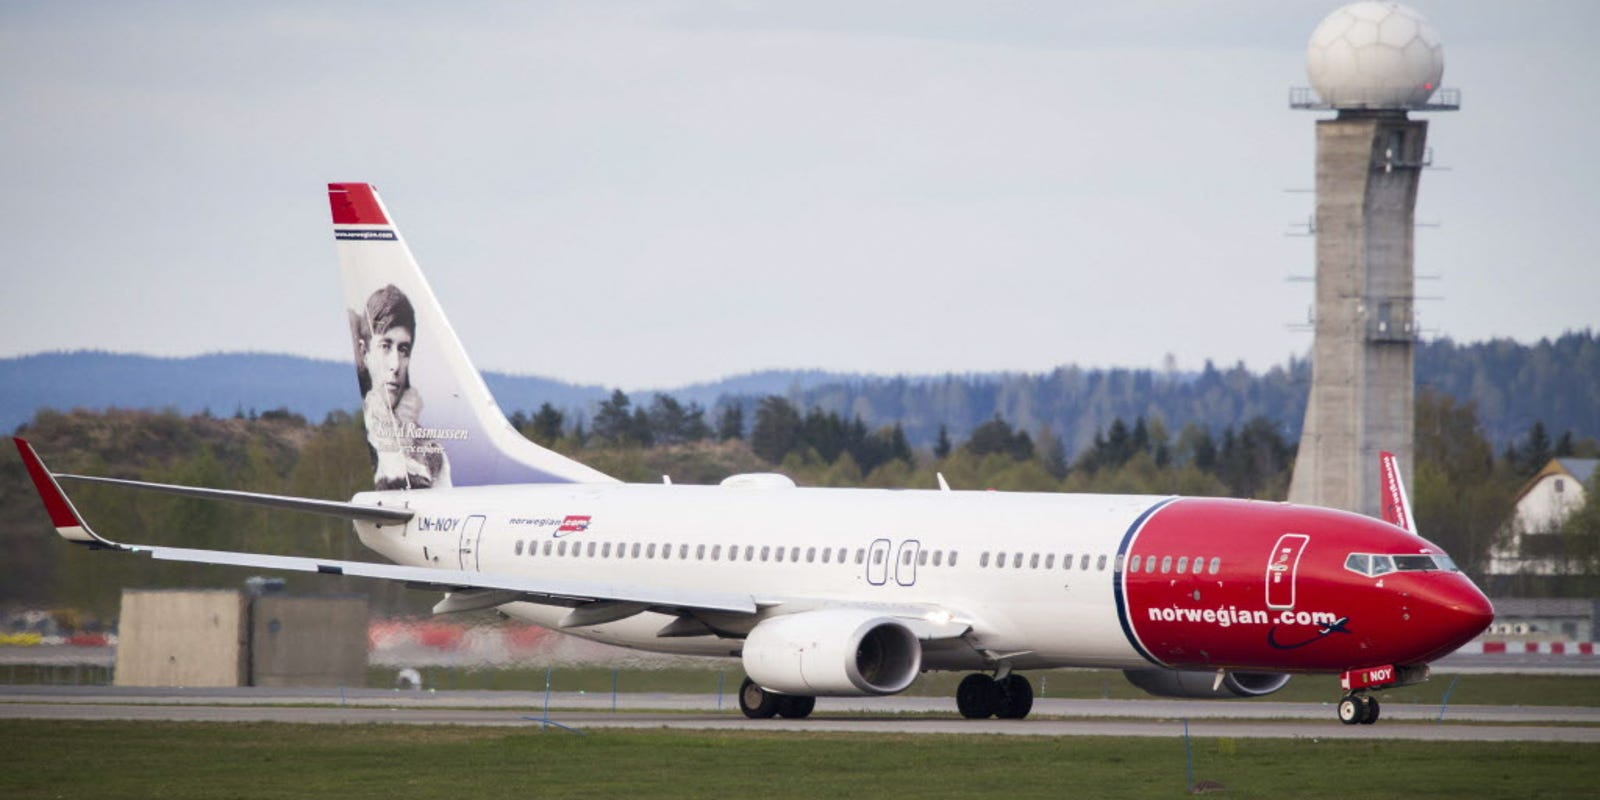 Norwegian Air's $65 fares to Europe: What's the catch?